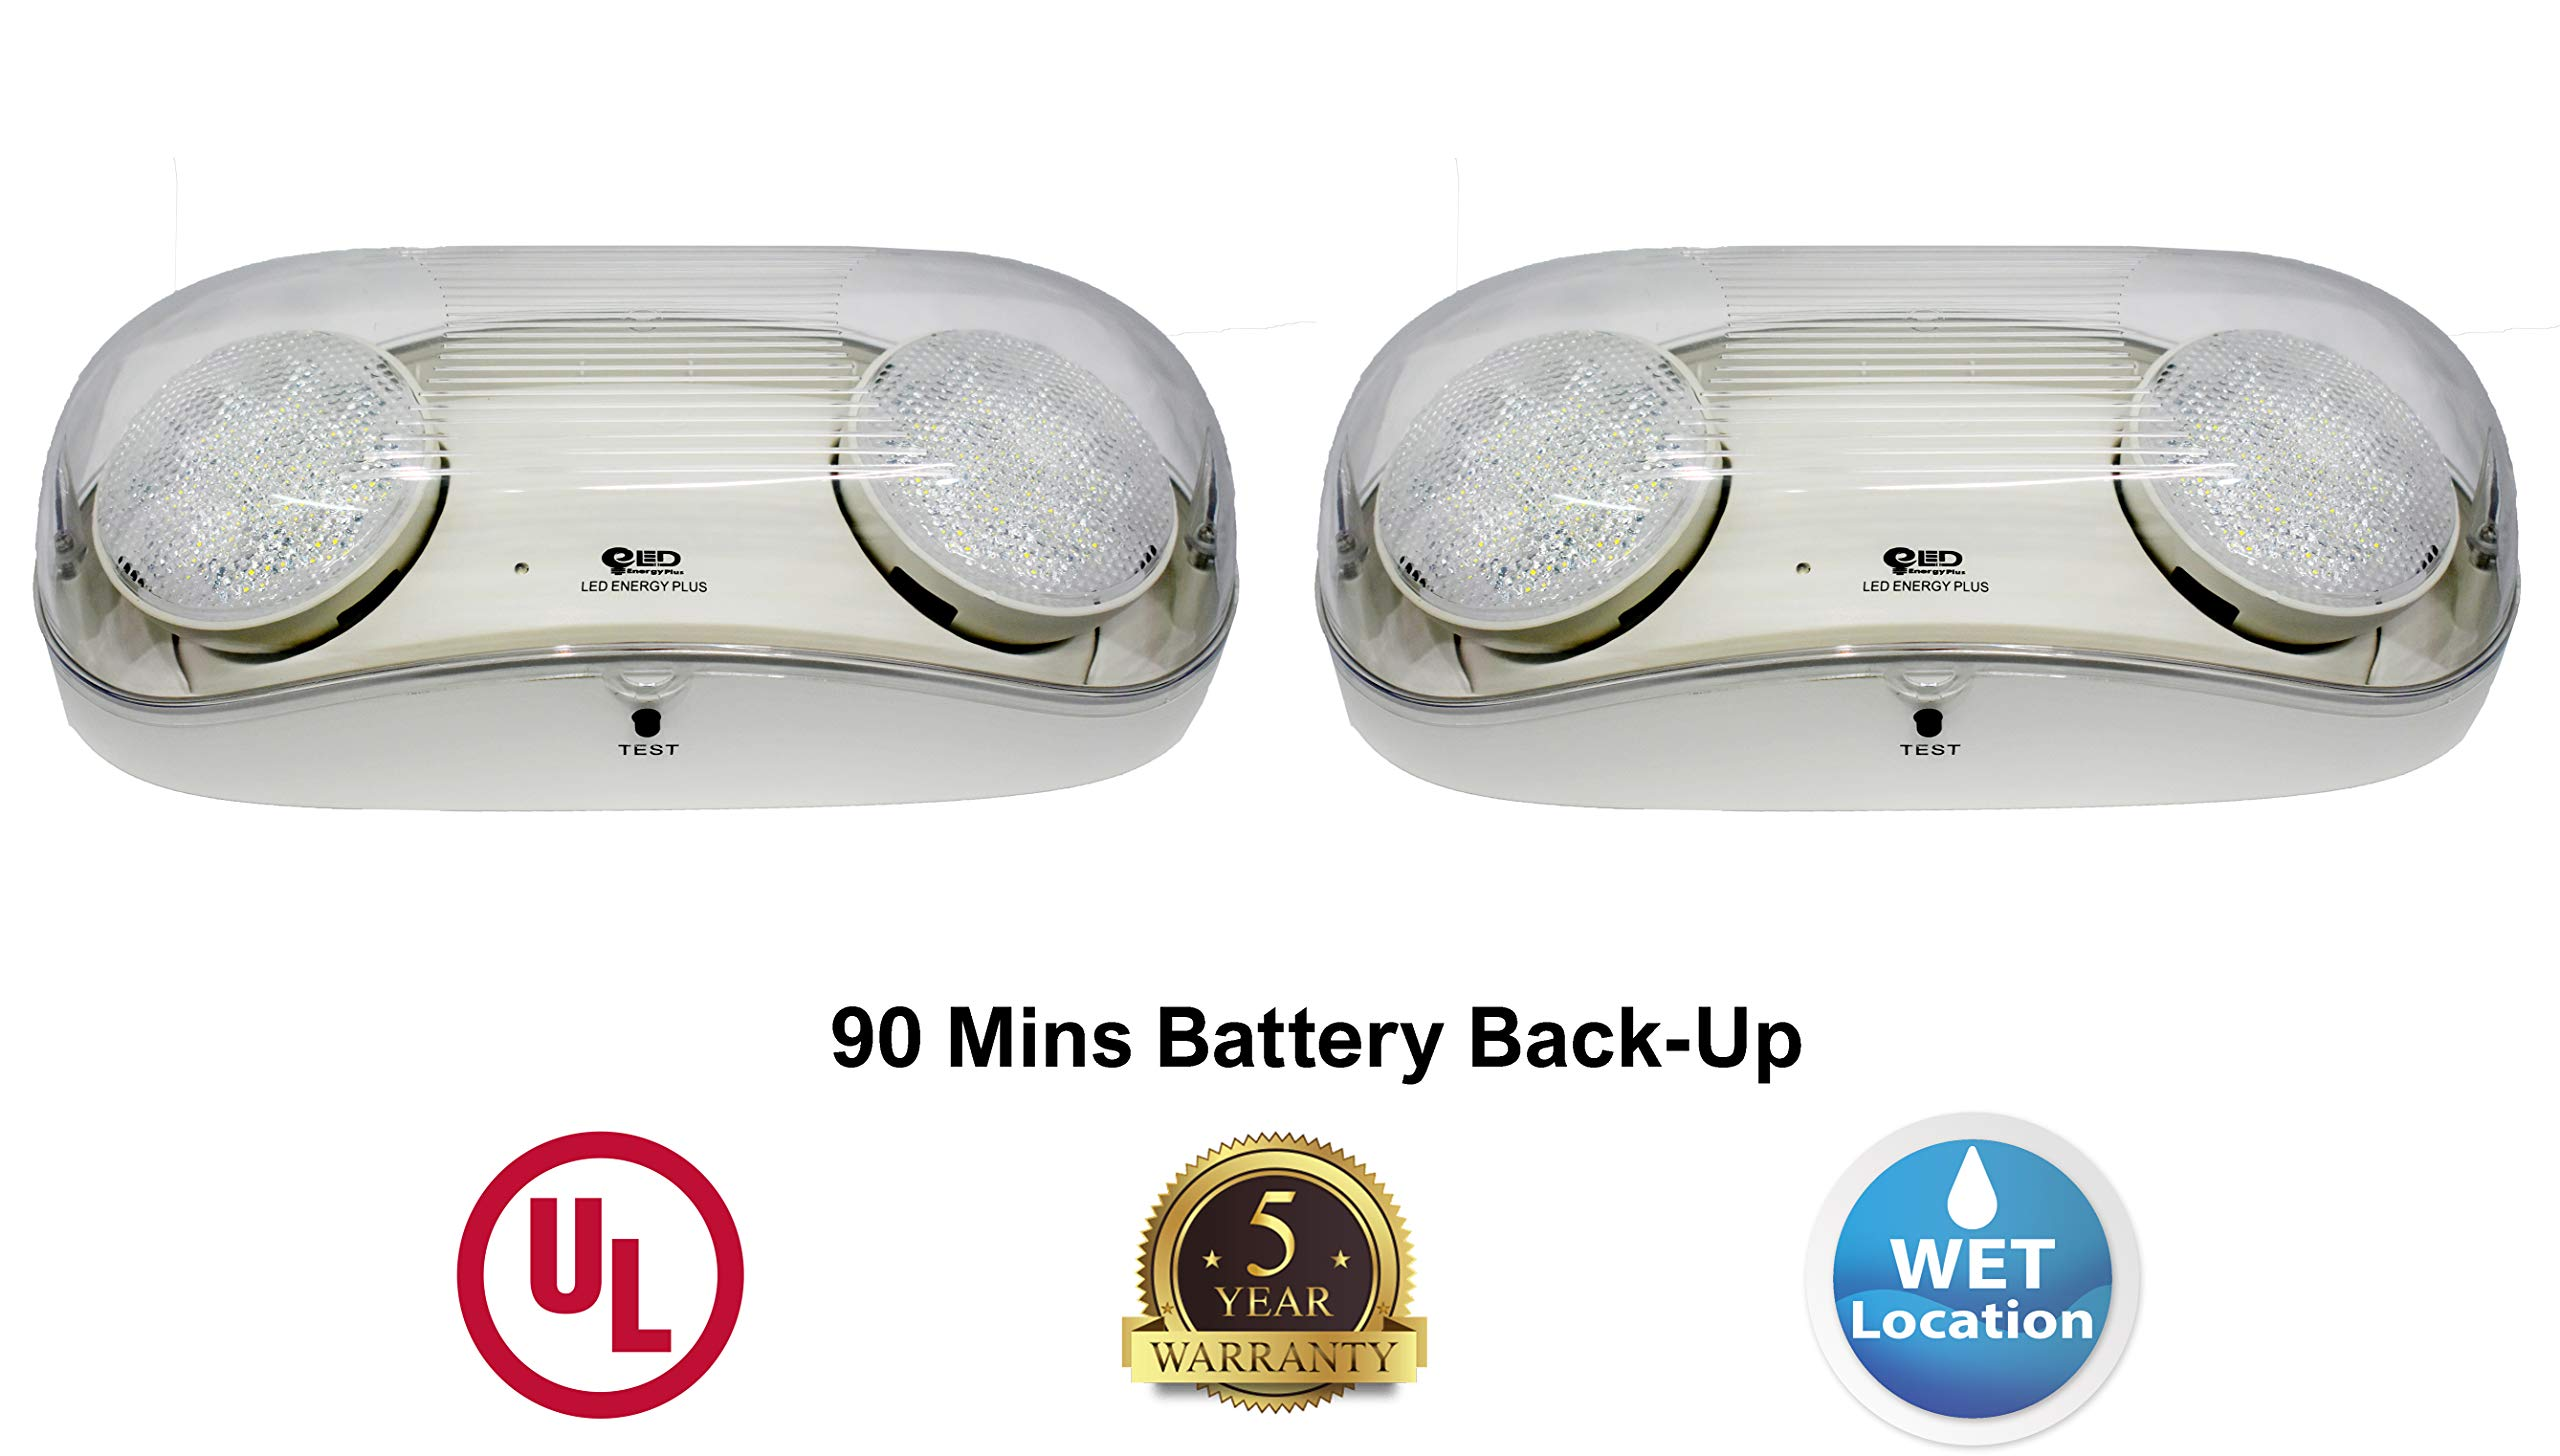 Outdoor Rated Ultra-Bright White LED Emergency Light(Bug Eyes) with Battery Backup, Wet Location Listed, 90-Minute Minimum Capacity, UL Certified, 5 Years Warranty (2 Pack) by LED ENERGY PLUS